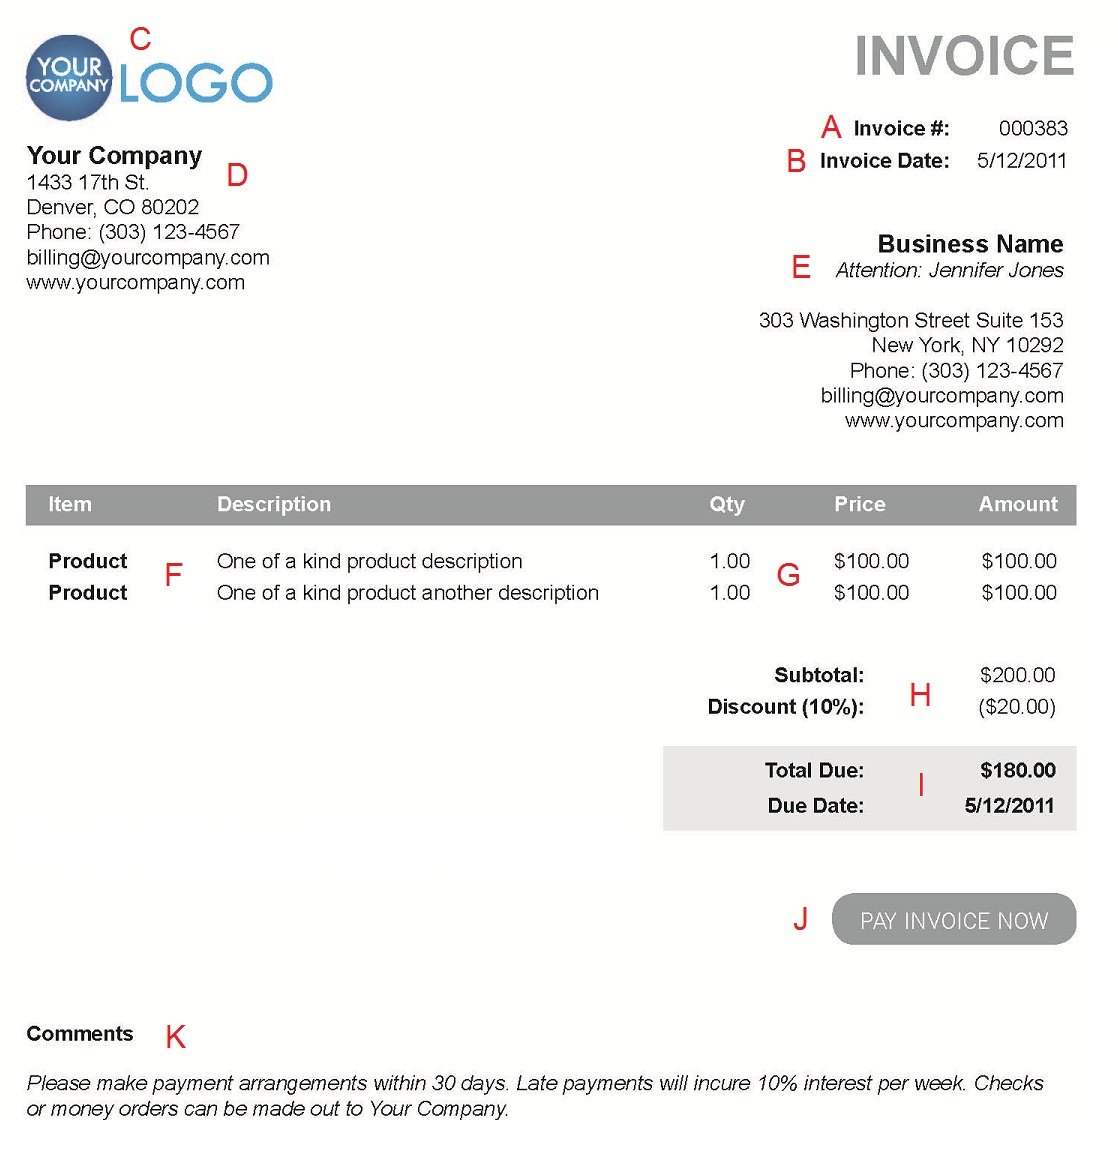 Aaaaeroincus  Winsome The  Different Sections Of An Electronic Payment Invoice With Fetching A  With Beautiful Hand Receipt Template Also Outlook Delivery Receipt In Addition Read Receipt Not Working And Personal Property Tax Receipt Missouri As Well As Manage Receipts App Additionally Receipt For Lasagna From Paysimplecom With Aaaaeroincus  Fetching The  Different Sections Of An Electronic Payment Invoice With Beautiful A  And Winsome Hand Receipt Template Also Outlook Delivery Receipt In Addition Read Receipt Not Working From Paysimplecom